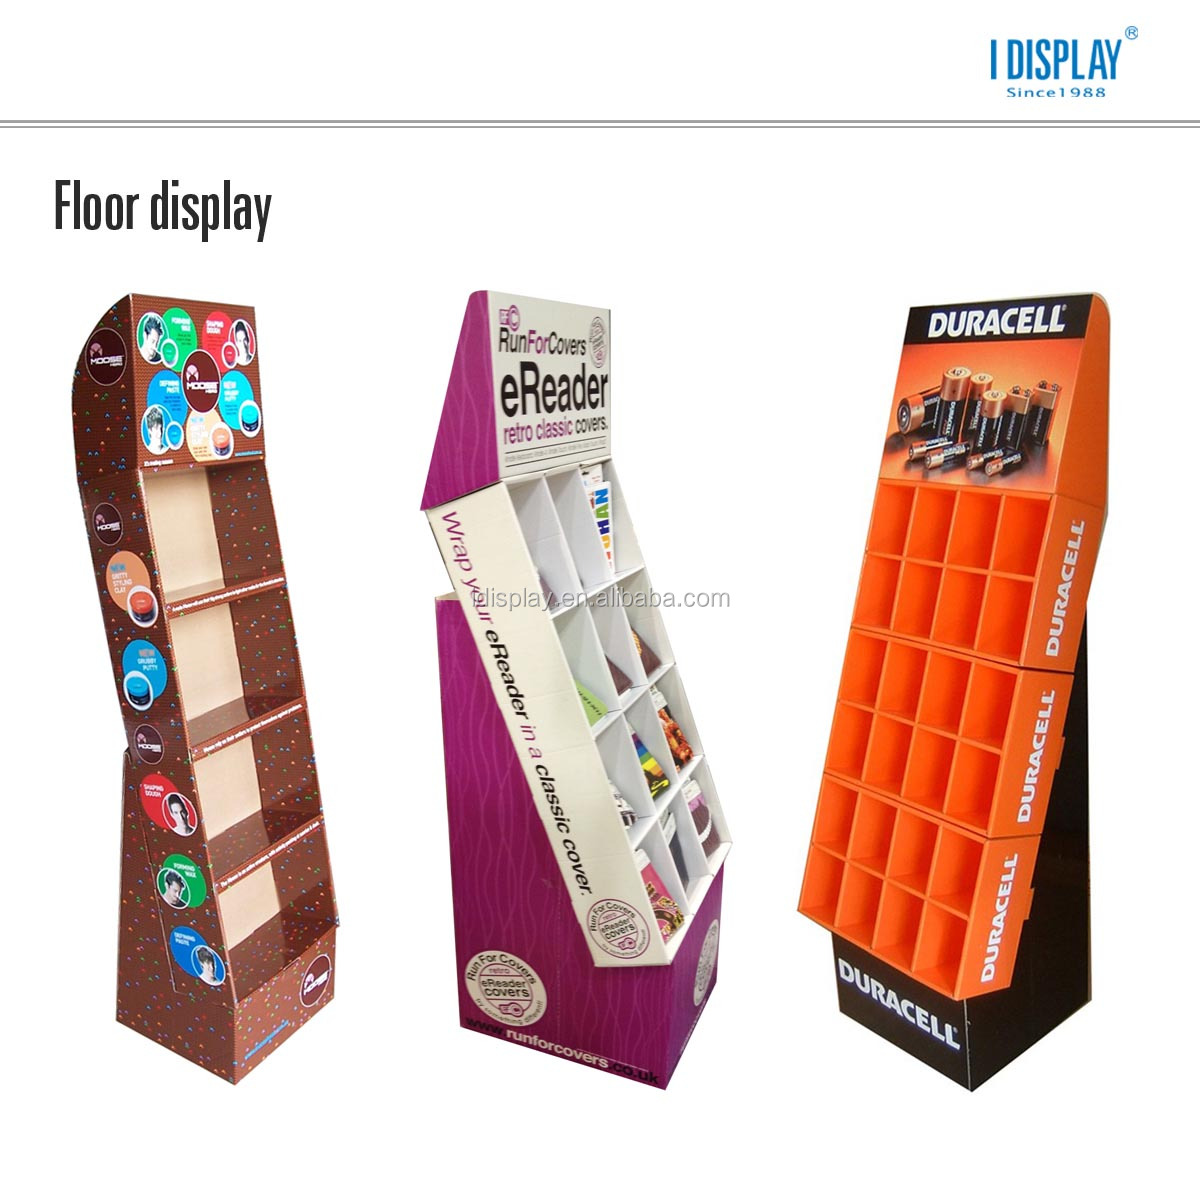 make up cosmetic product display stands with high quality floor display stand